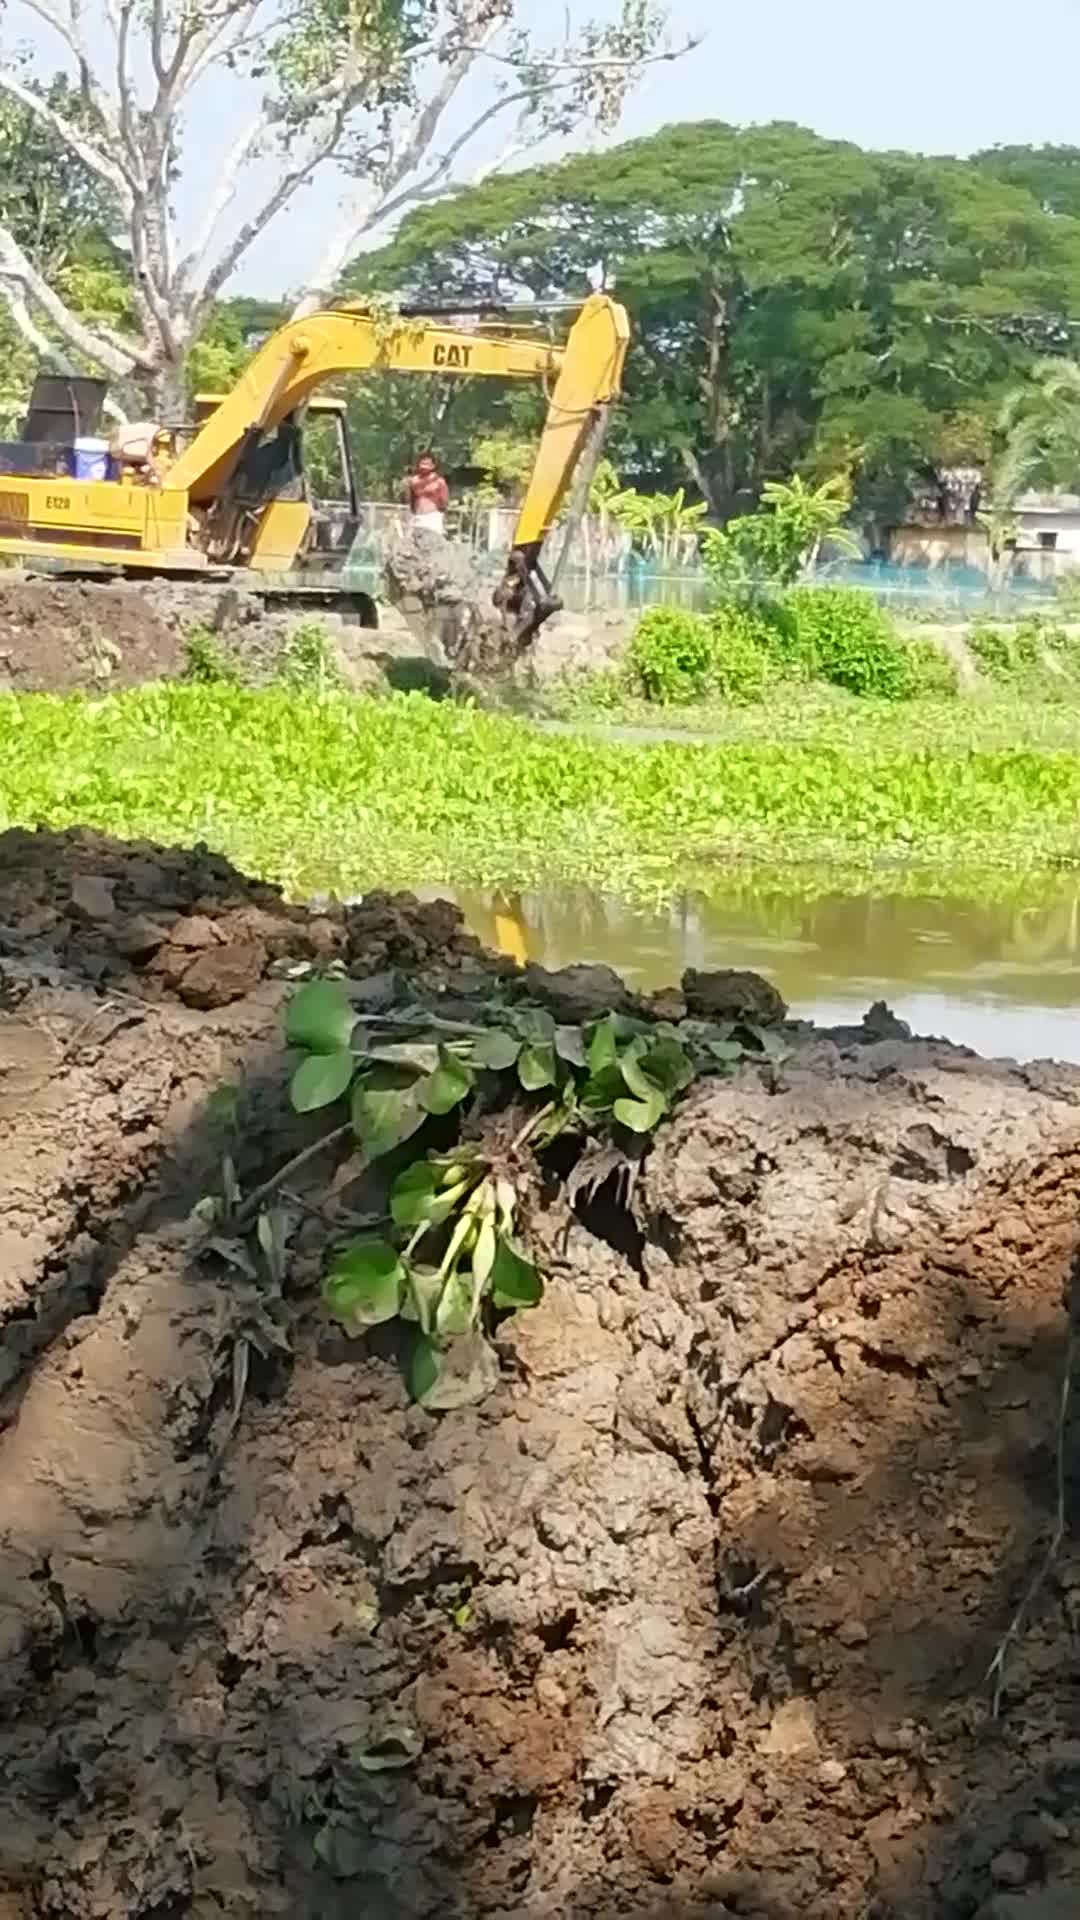 The video that you can see on the screen has been made. A video of the road being dug with Beko machine has been shown to you as it will be plowed on Zeyala road in Satkhira district.